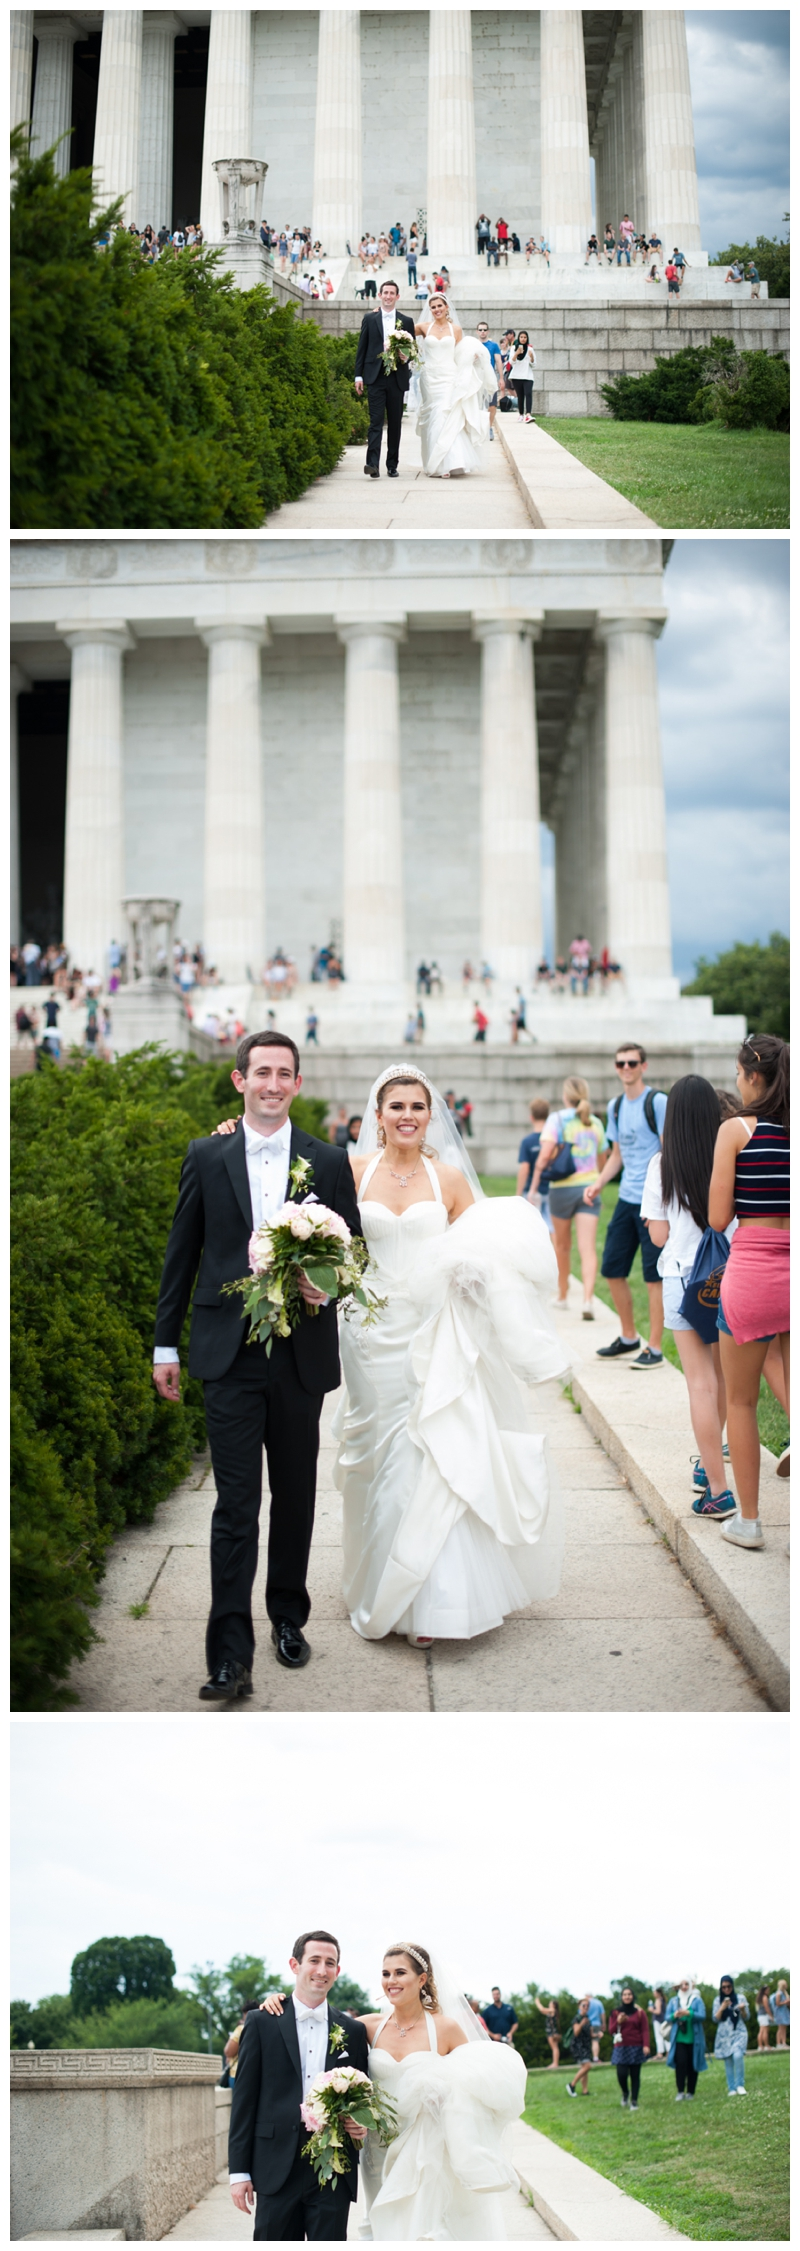 DC Wedding Day Portraits of Bride and Groom at the Lincoln Memorial by Rachael Foster Photography_0057.jpg